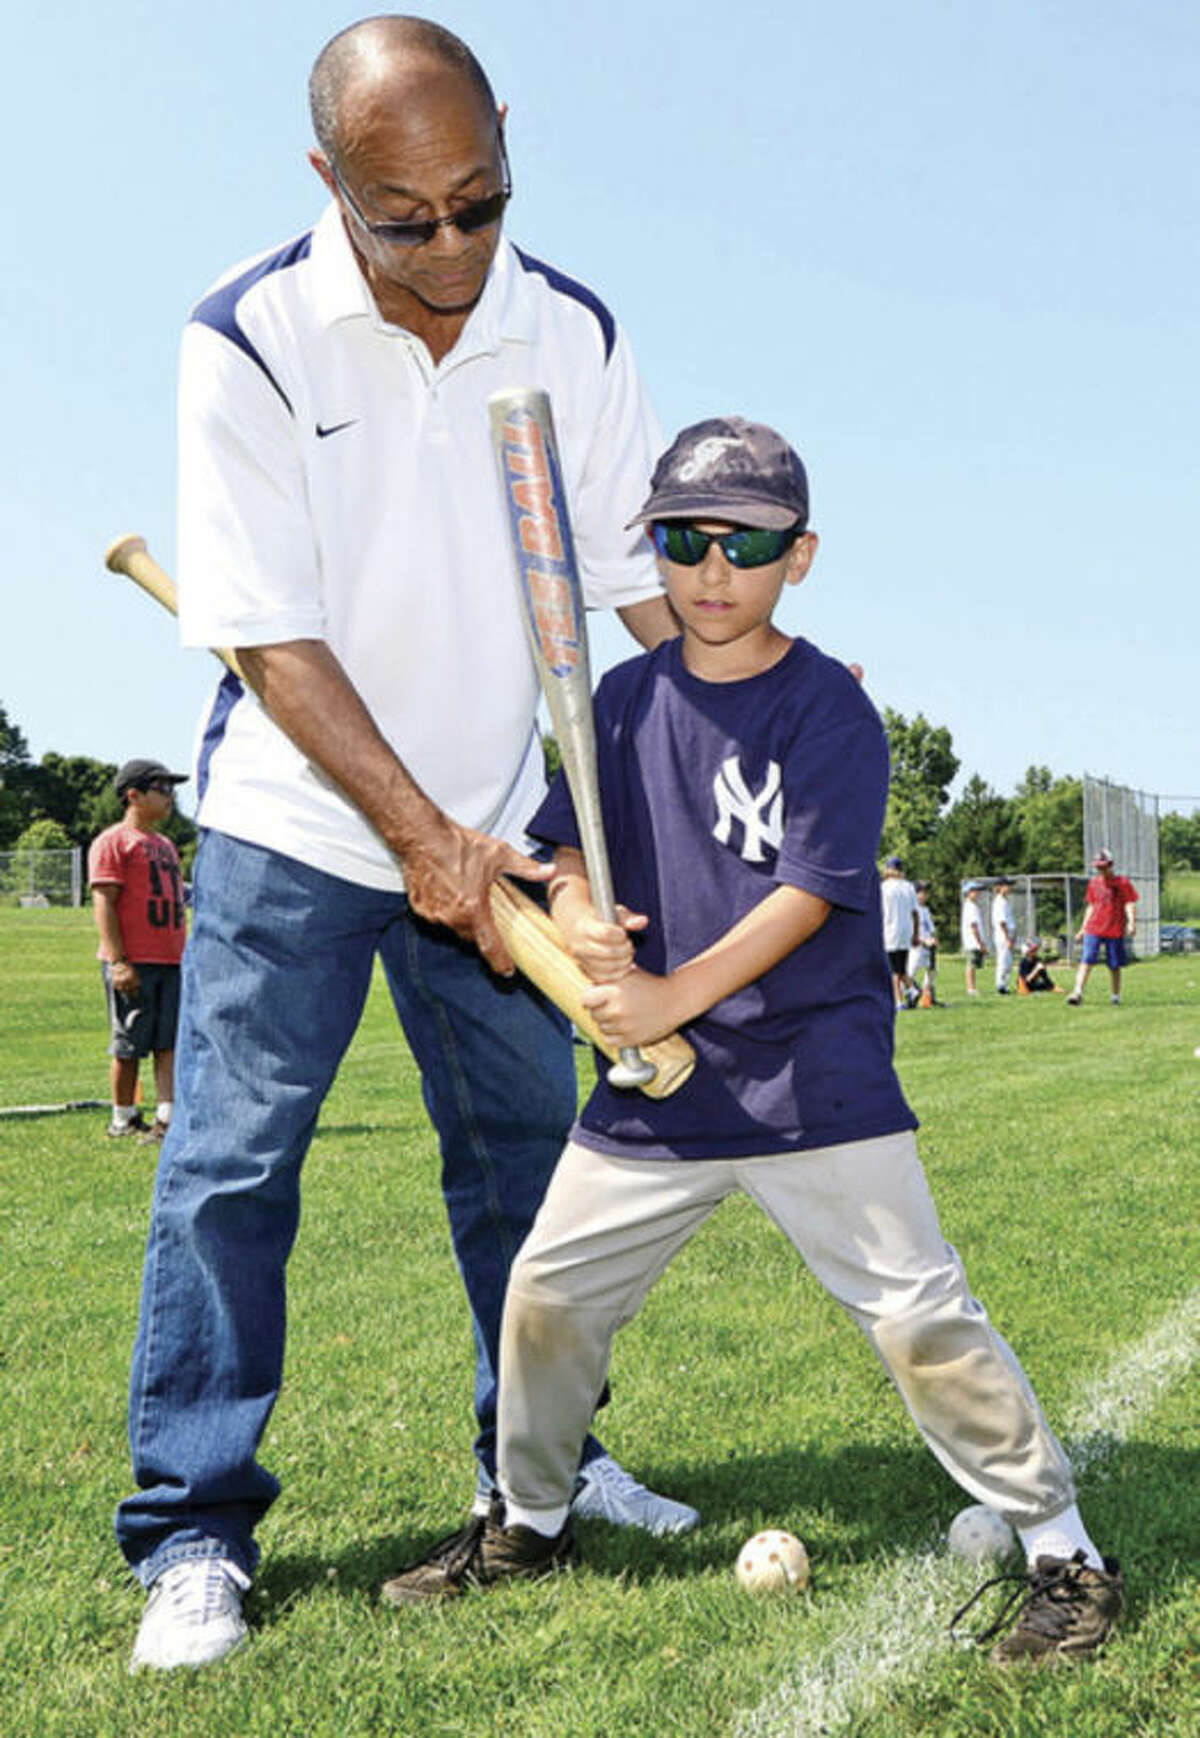 Hour photo / Erik Trautmann Roy White, formerly of the New York Yankees, teaches campers including Jack Basbalg how to play baseball during the Baseball World summer camp at Wakeman Field in Westport Friday.